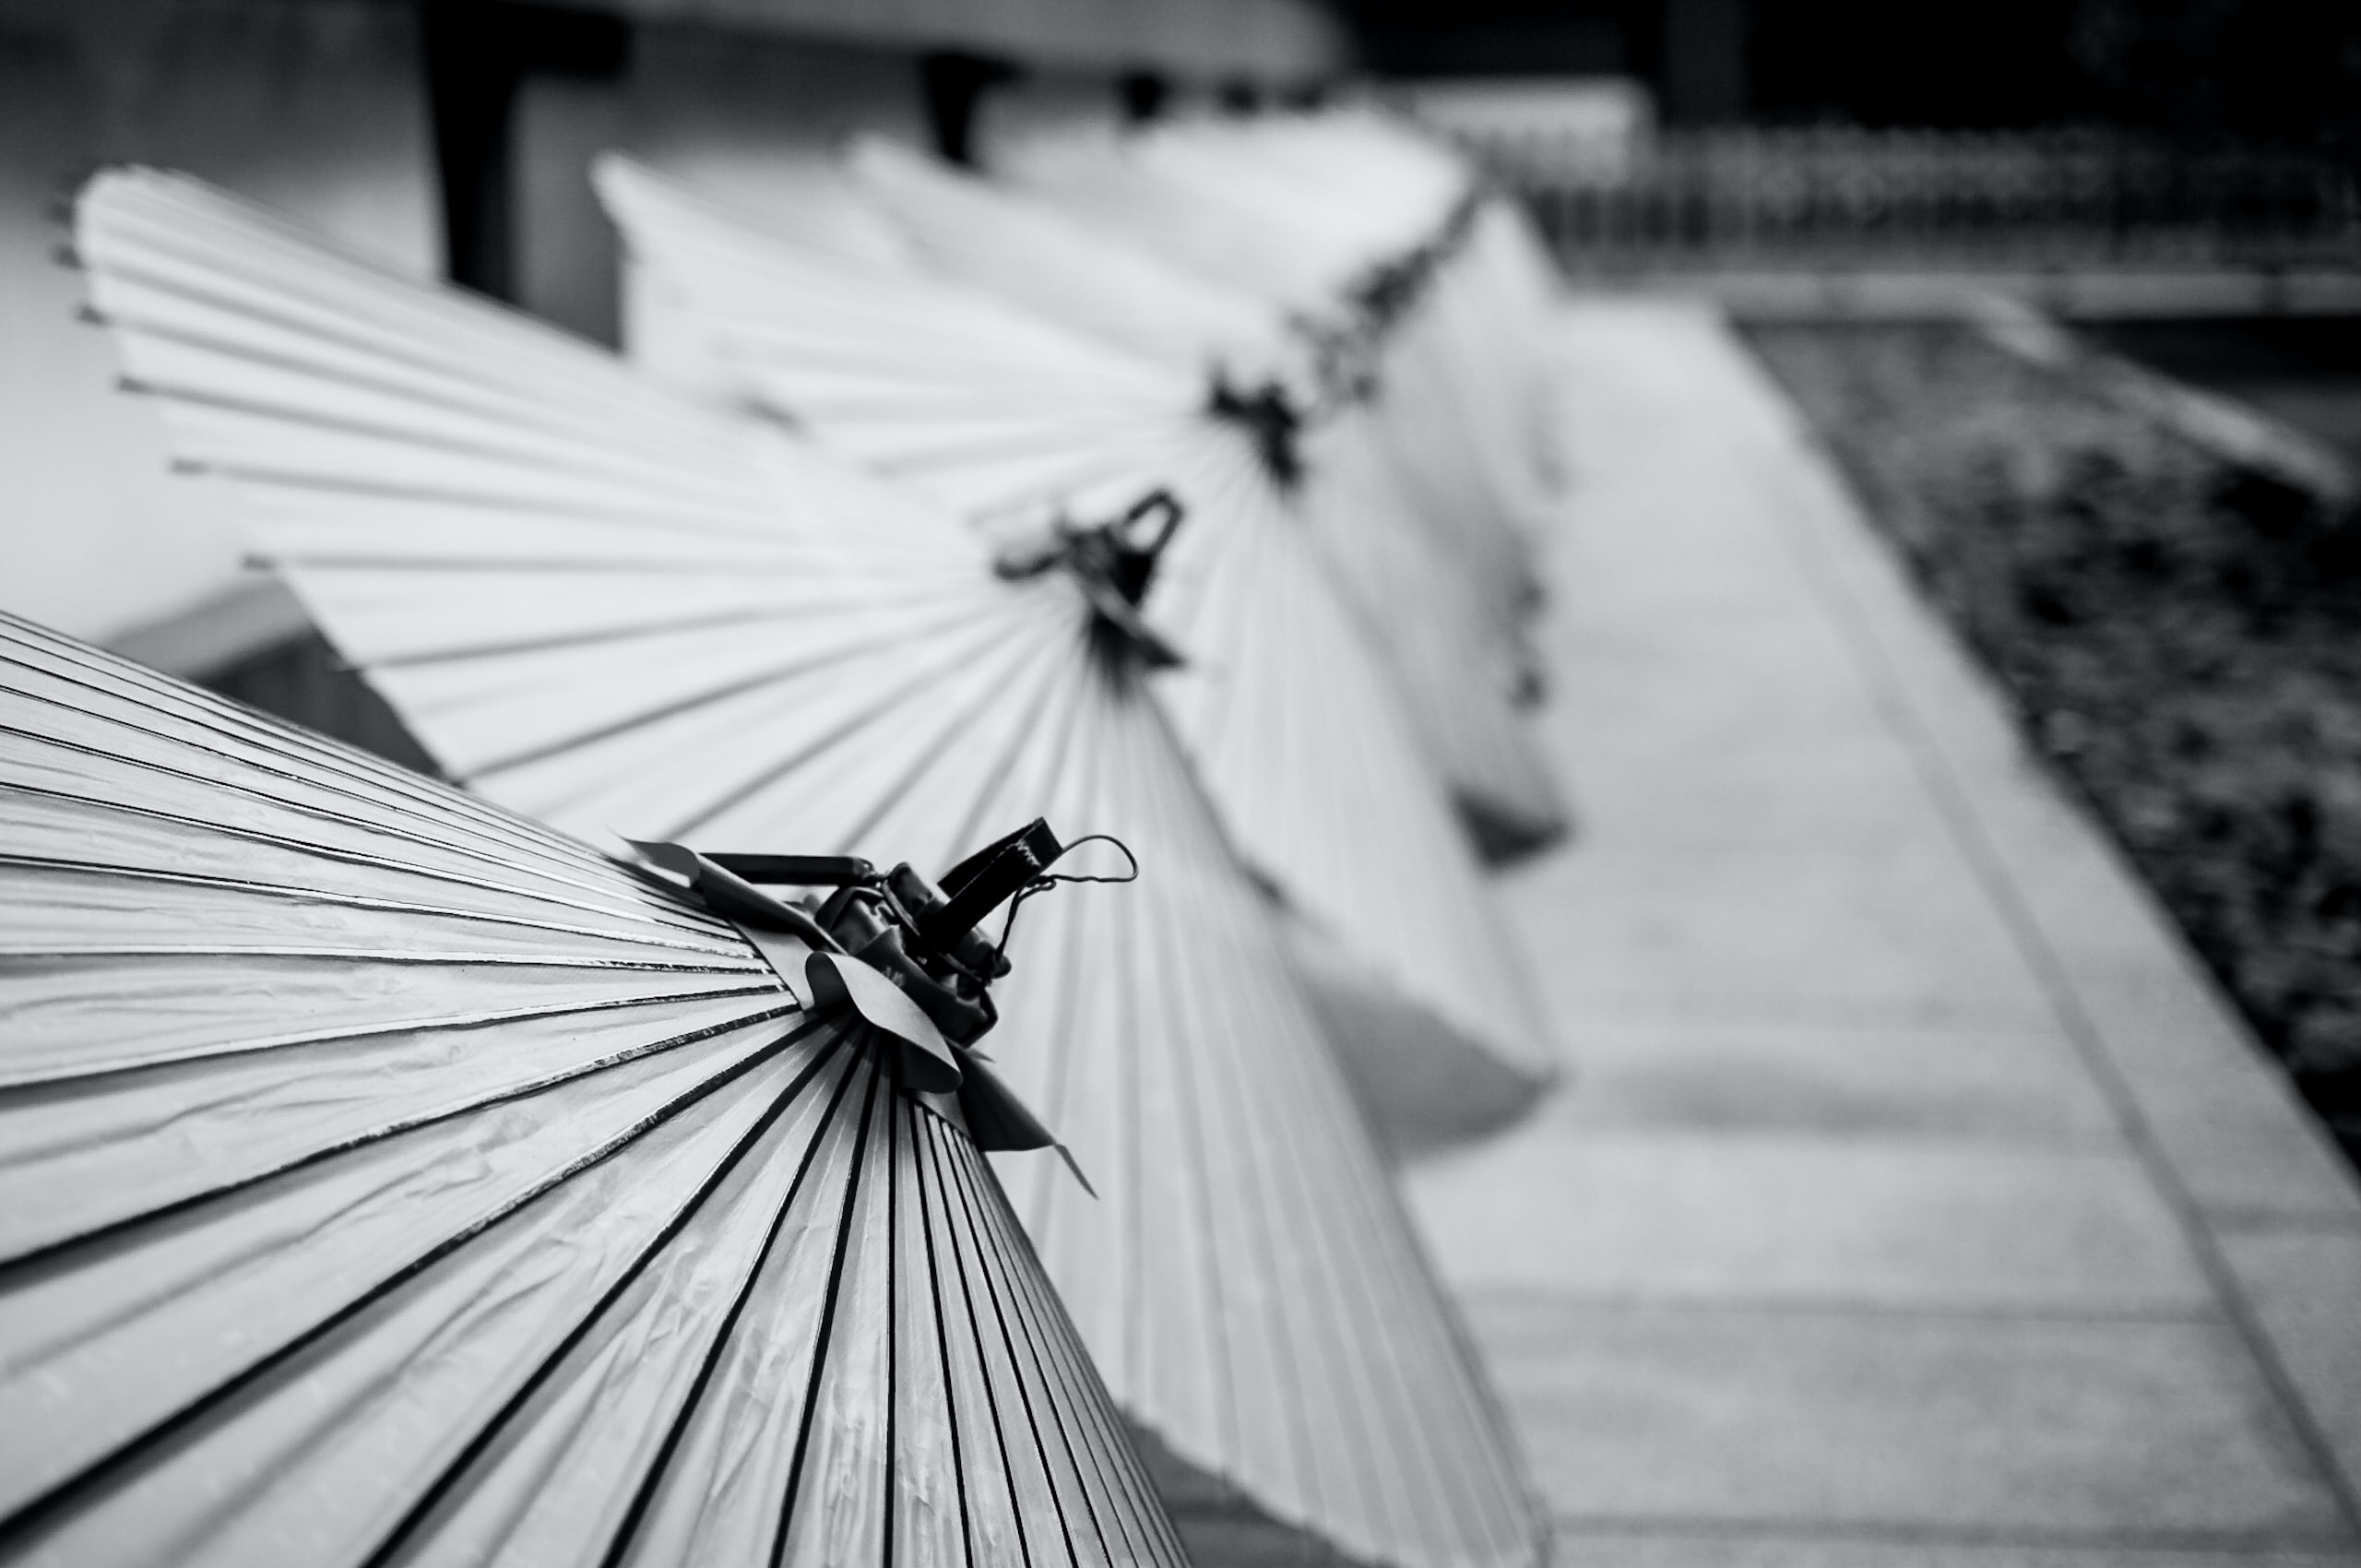 grayscale photography of opened Japanese umbrellas